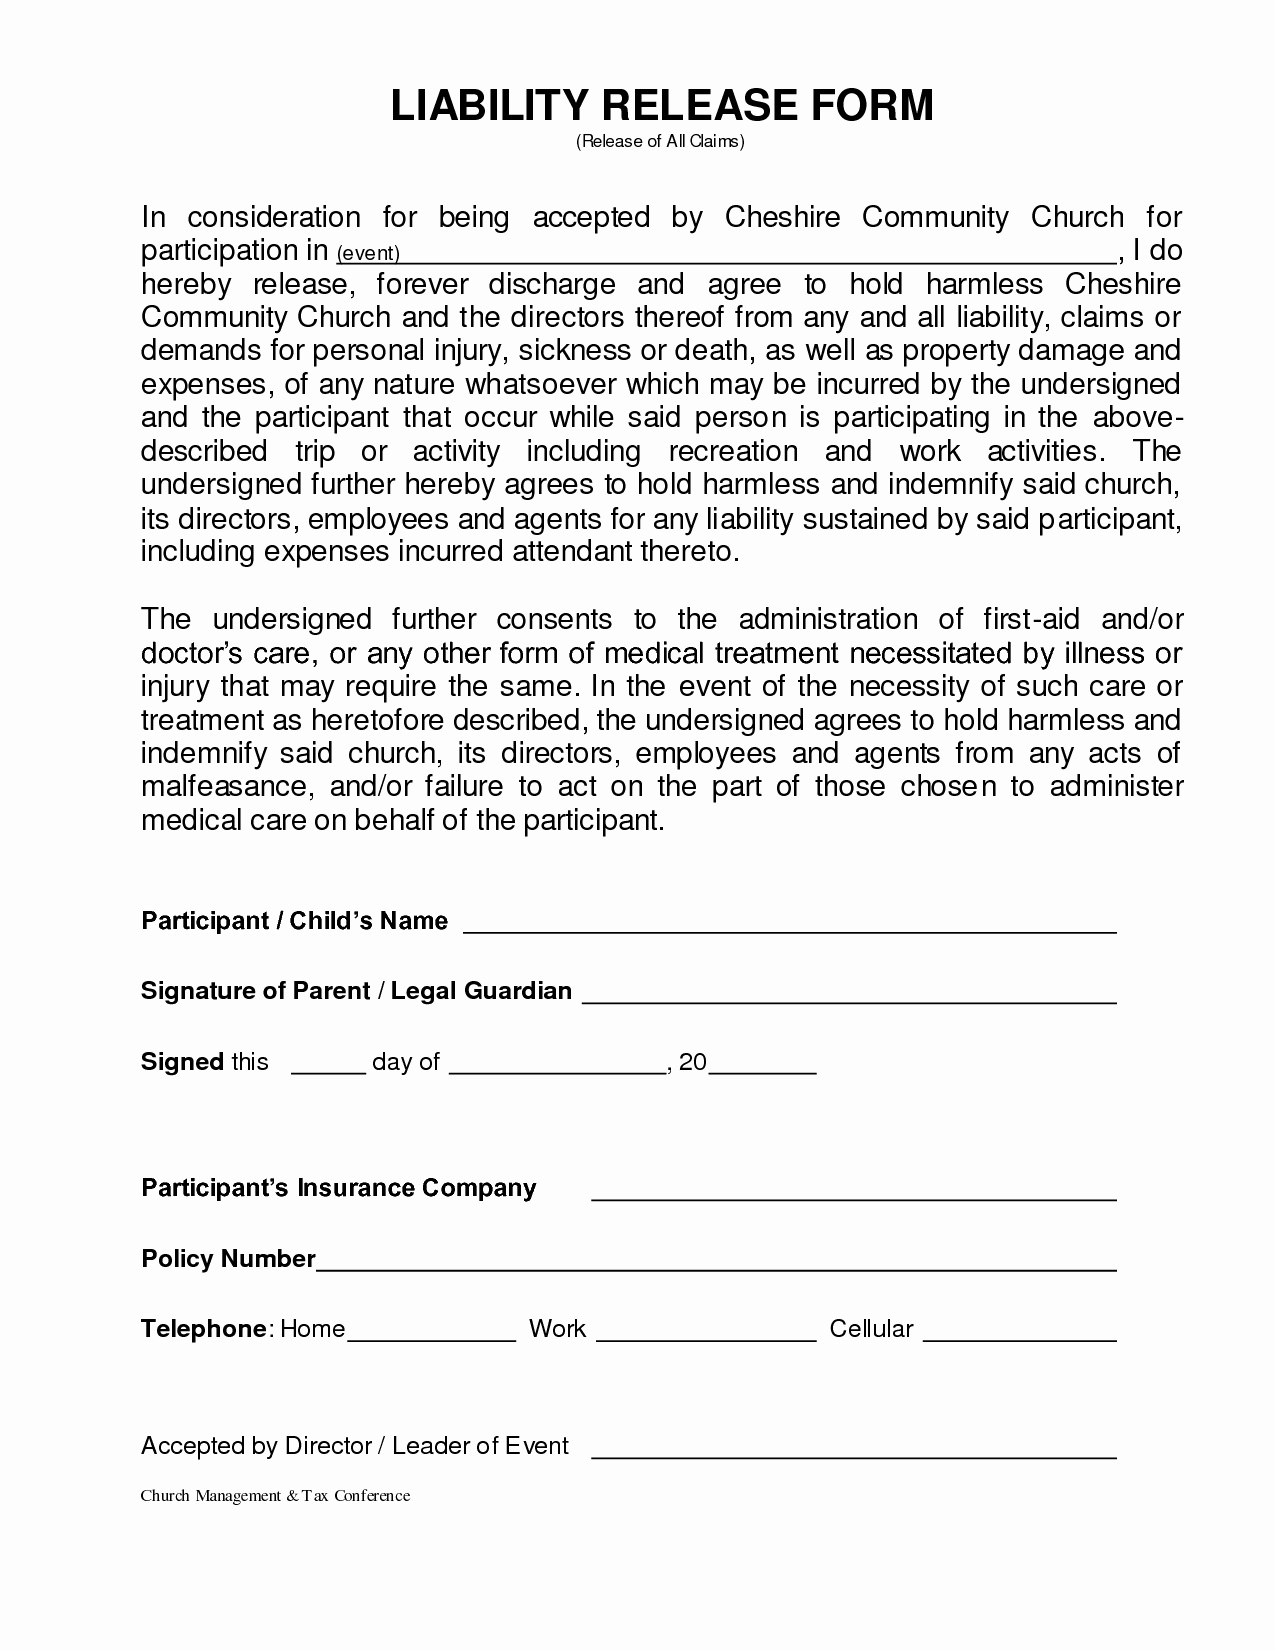 Personal Property Release form Template New General Liability Release form Template Pics